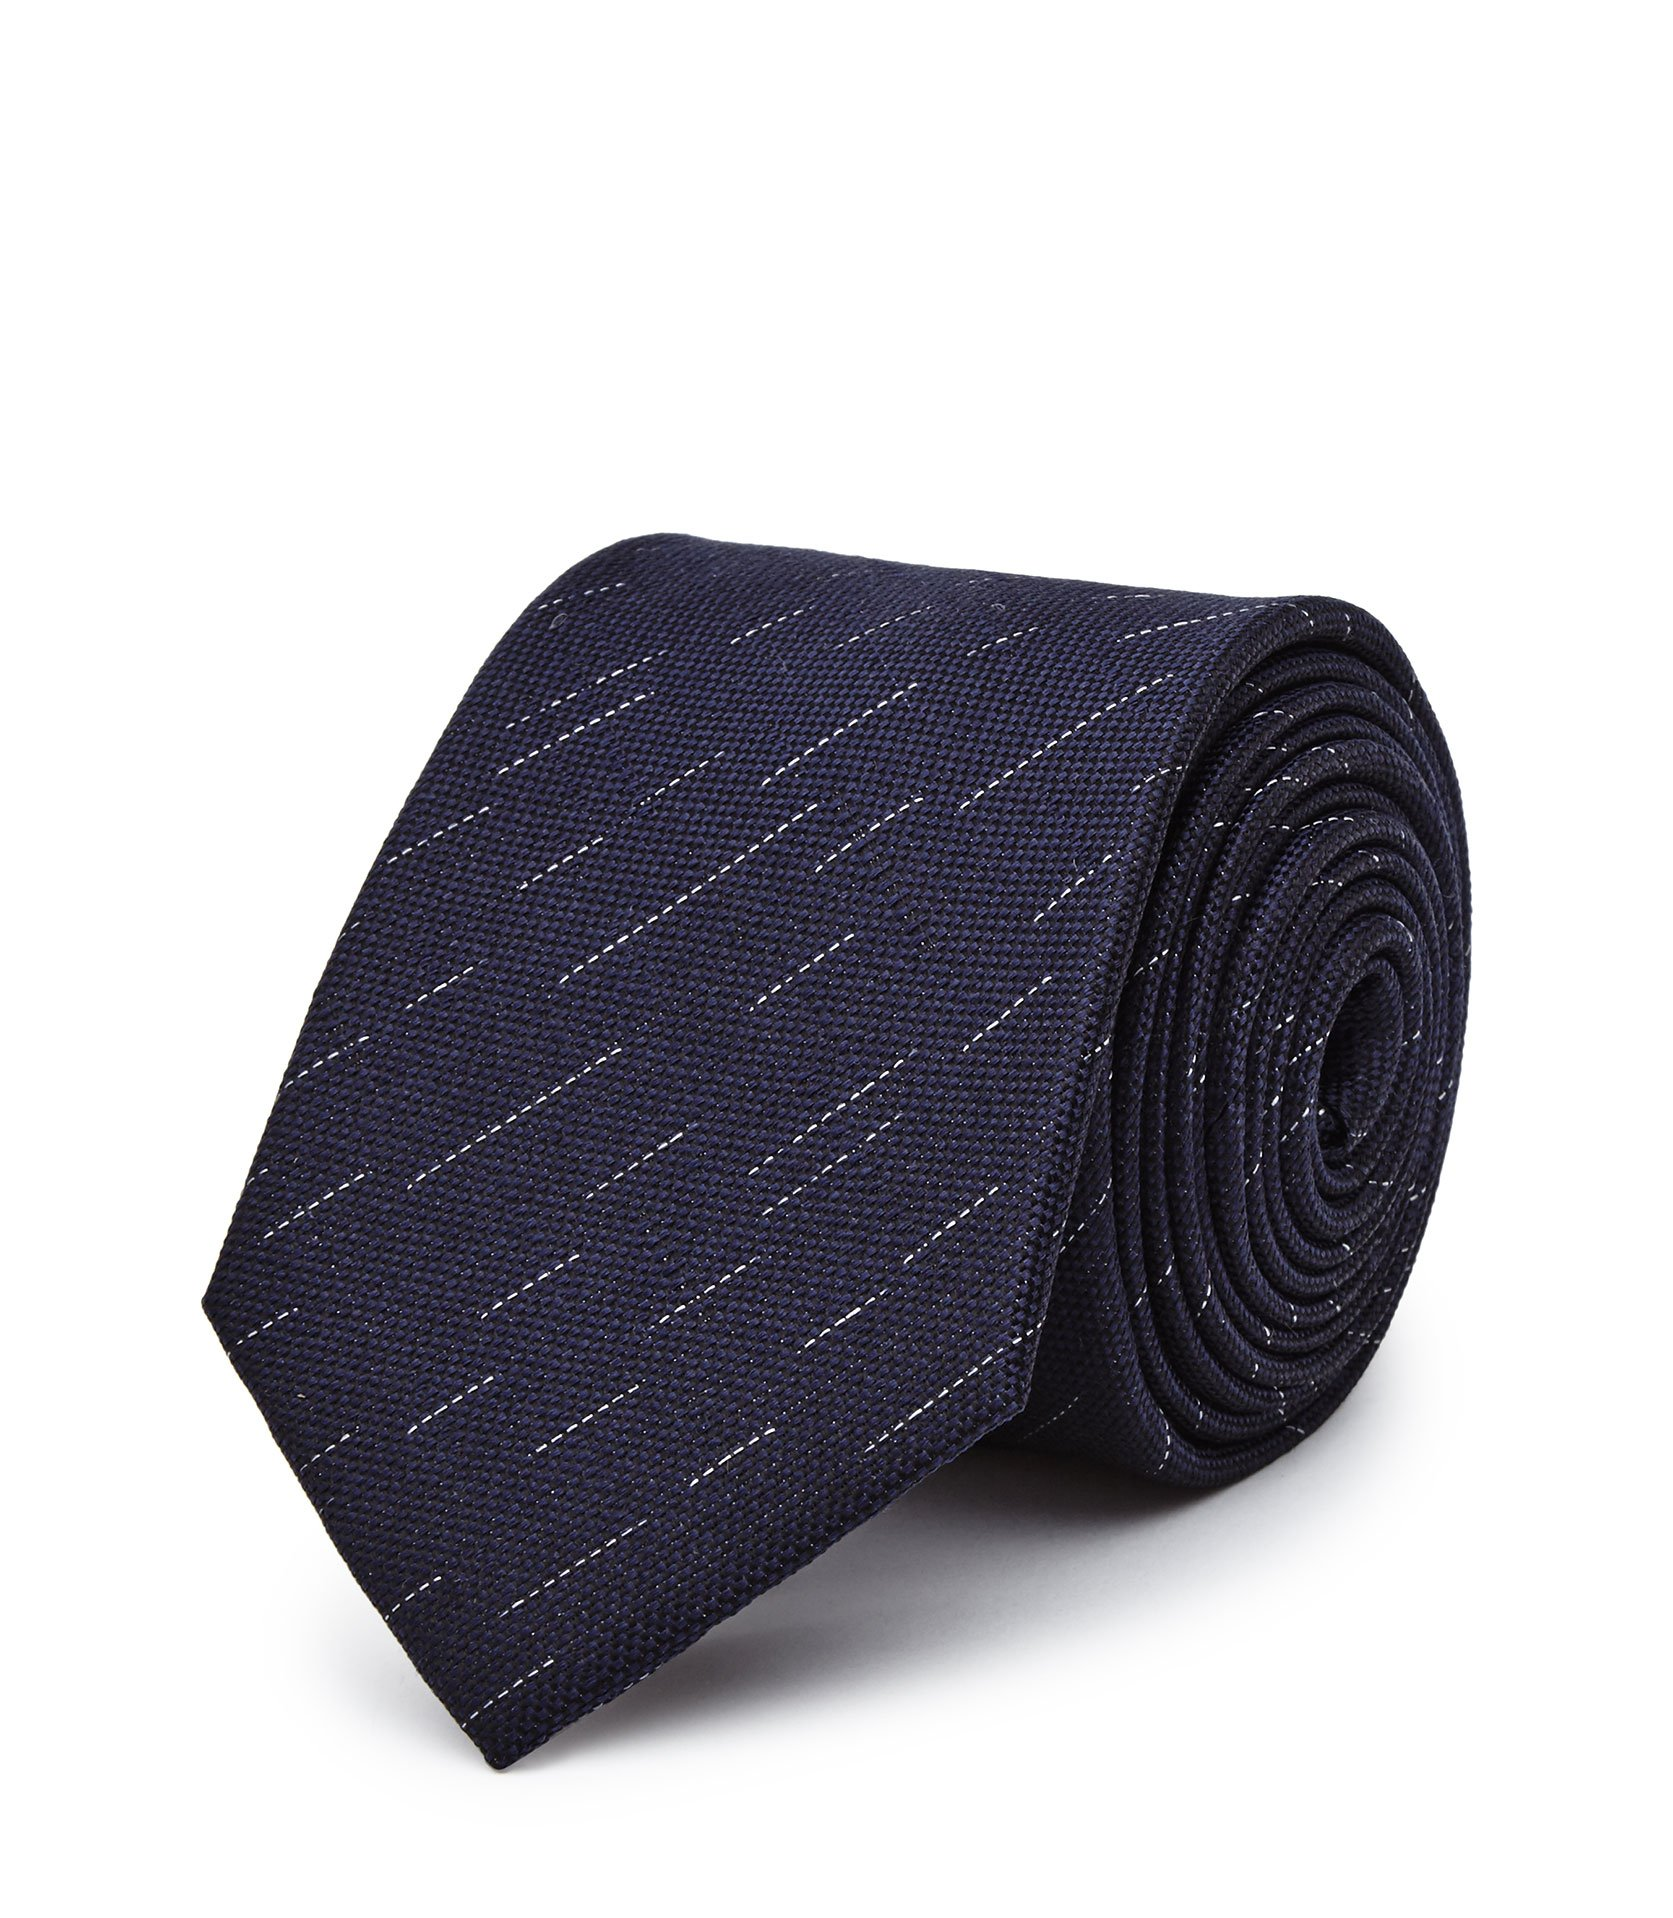 Reiss Navy Malta Silk Patterned Tie